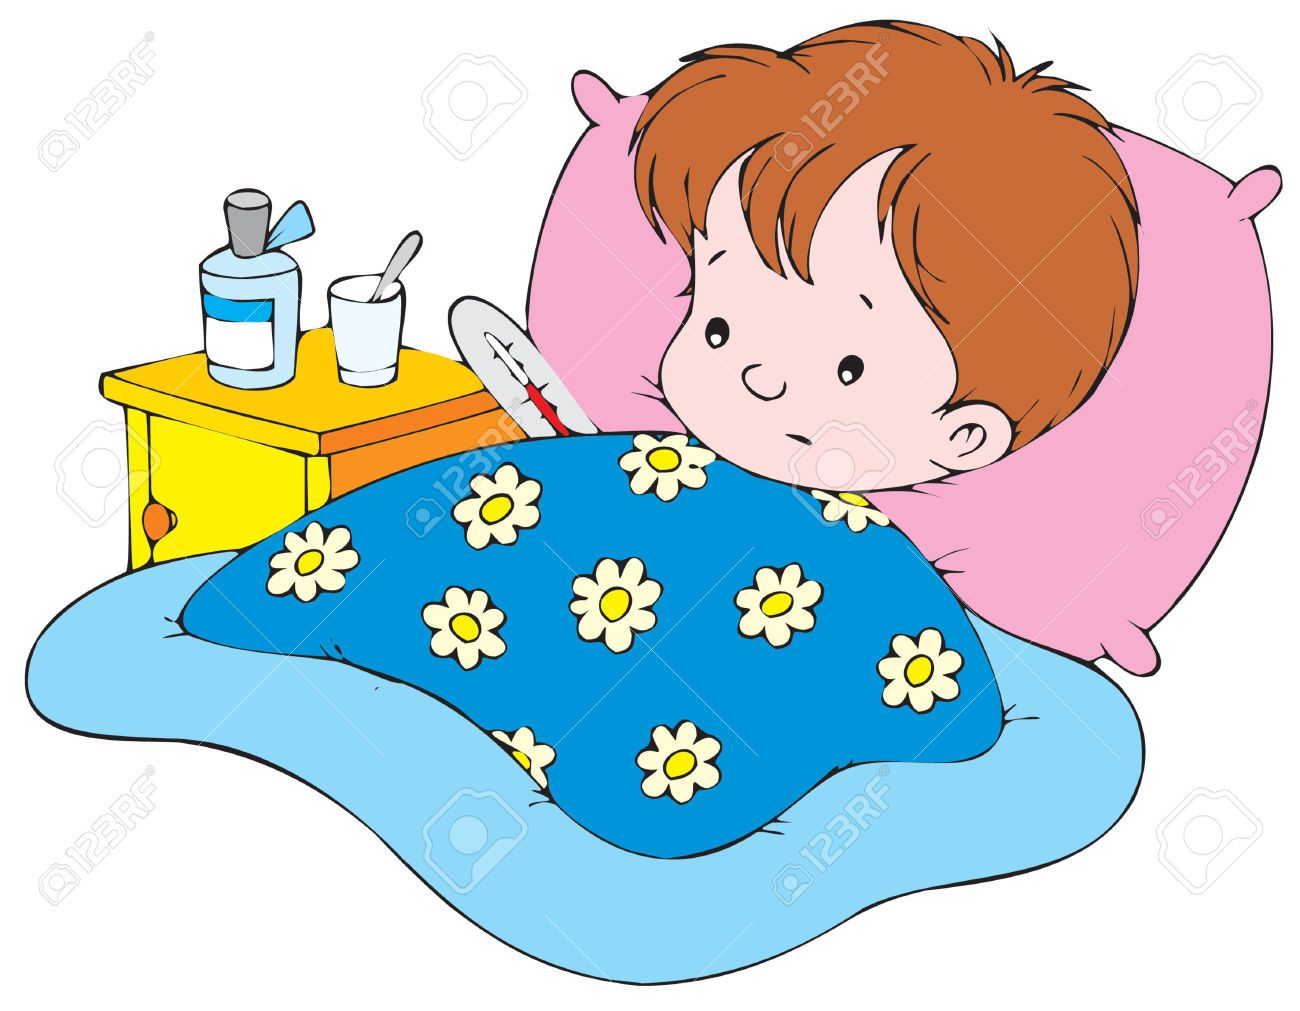 child sick clipart google clipart cute pinterest sick rh pinterest com sick clipart smiley stick clip art